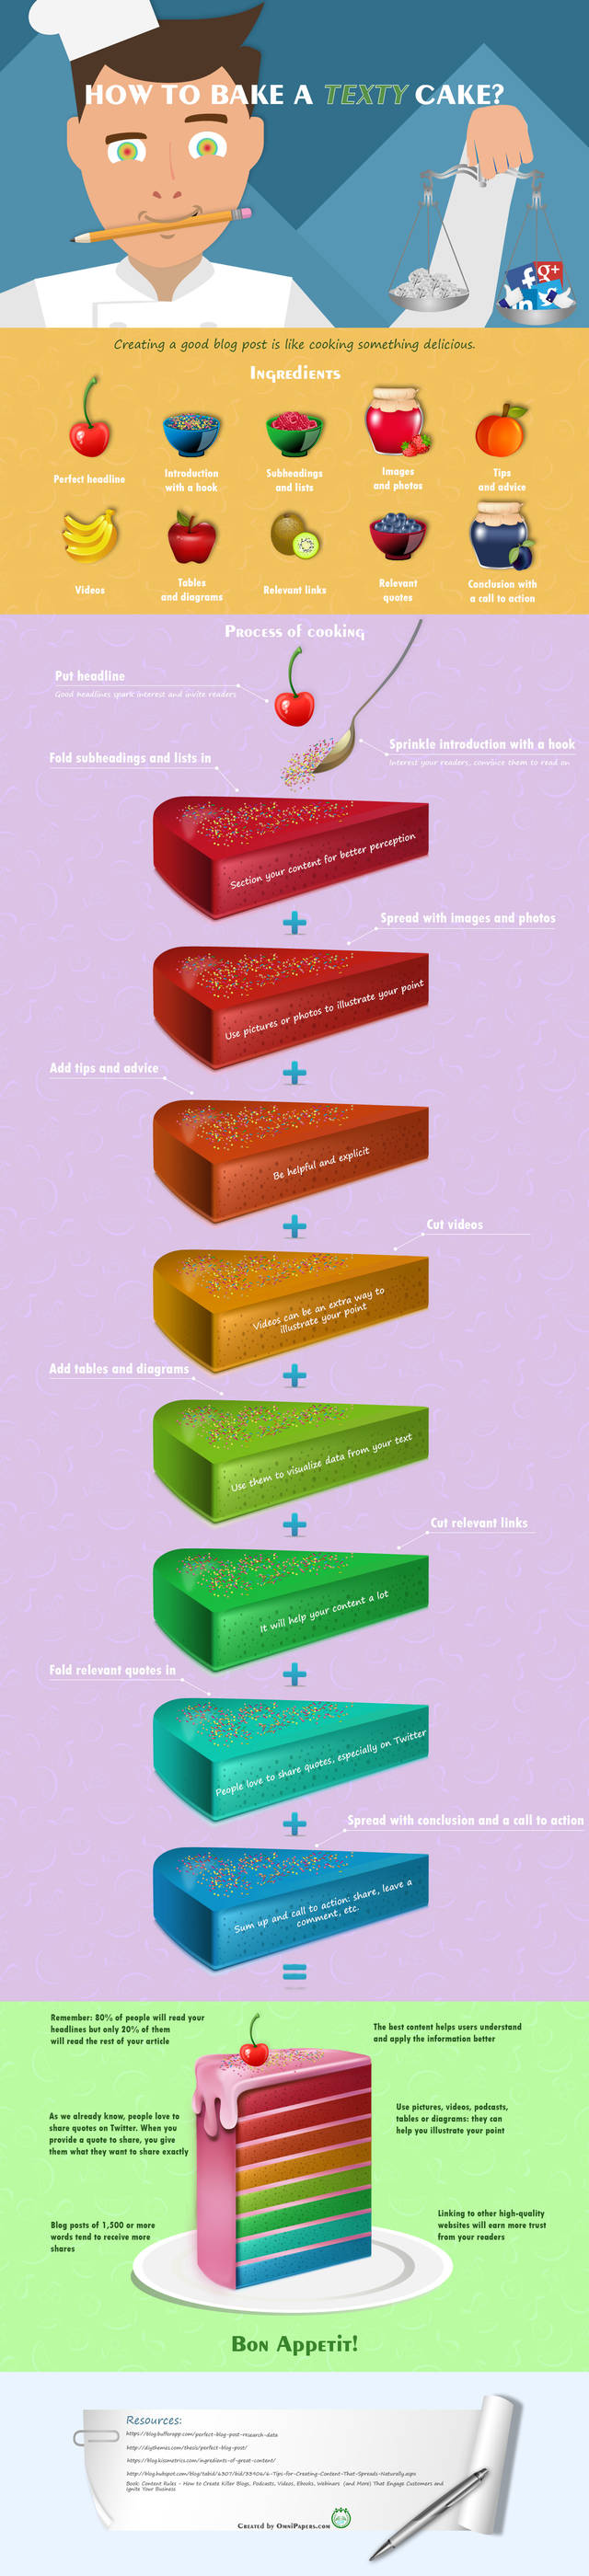 How to bake a texty cake (infographic)